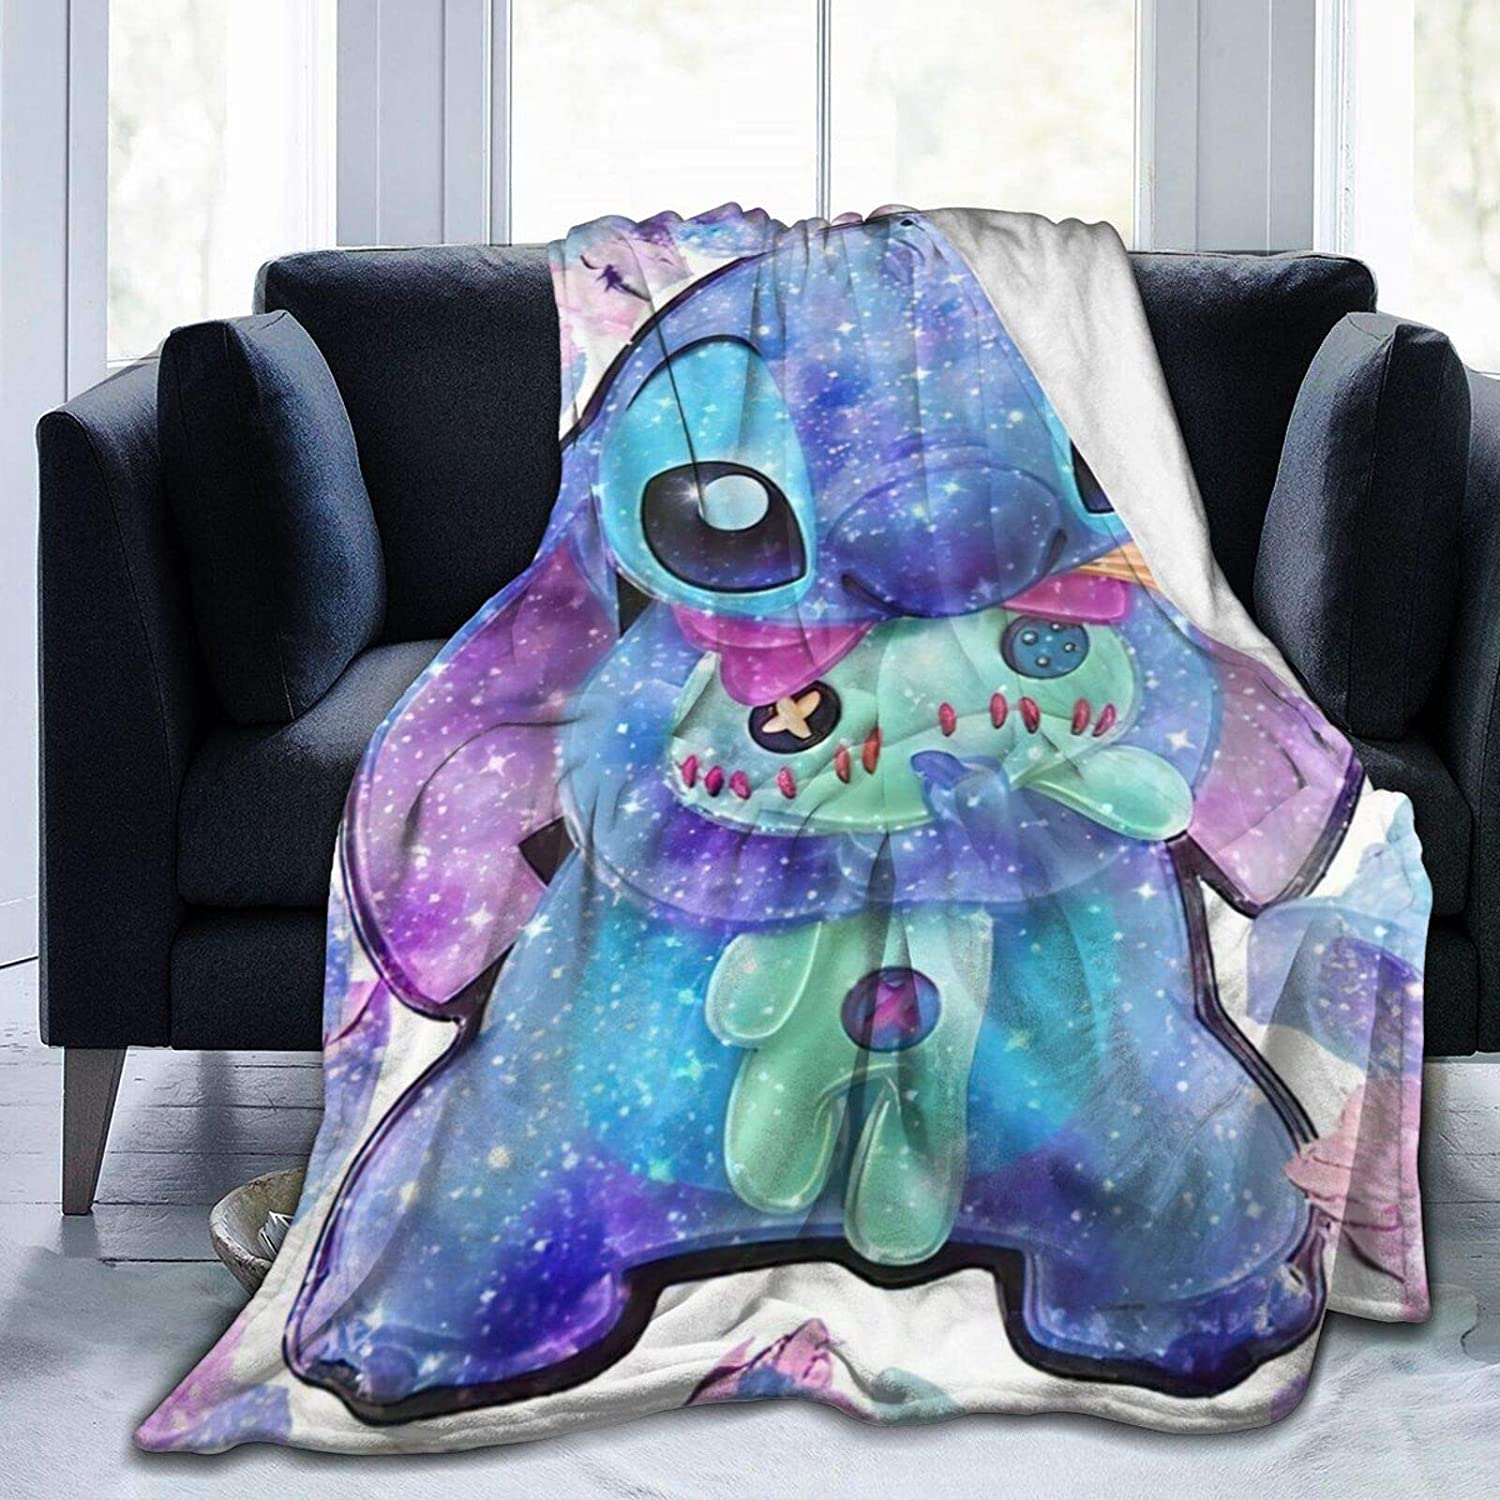 Lilo-Stitch Blanket Soft Comfortable Warm Outlet sale feature Max 52% OFF Flannel and Bl